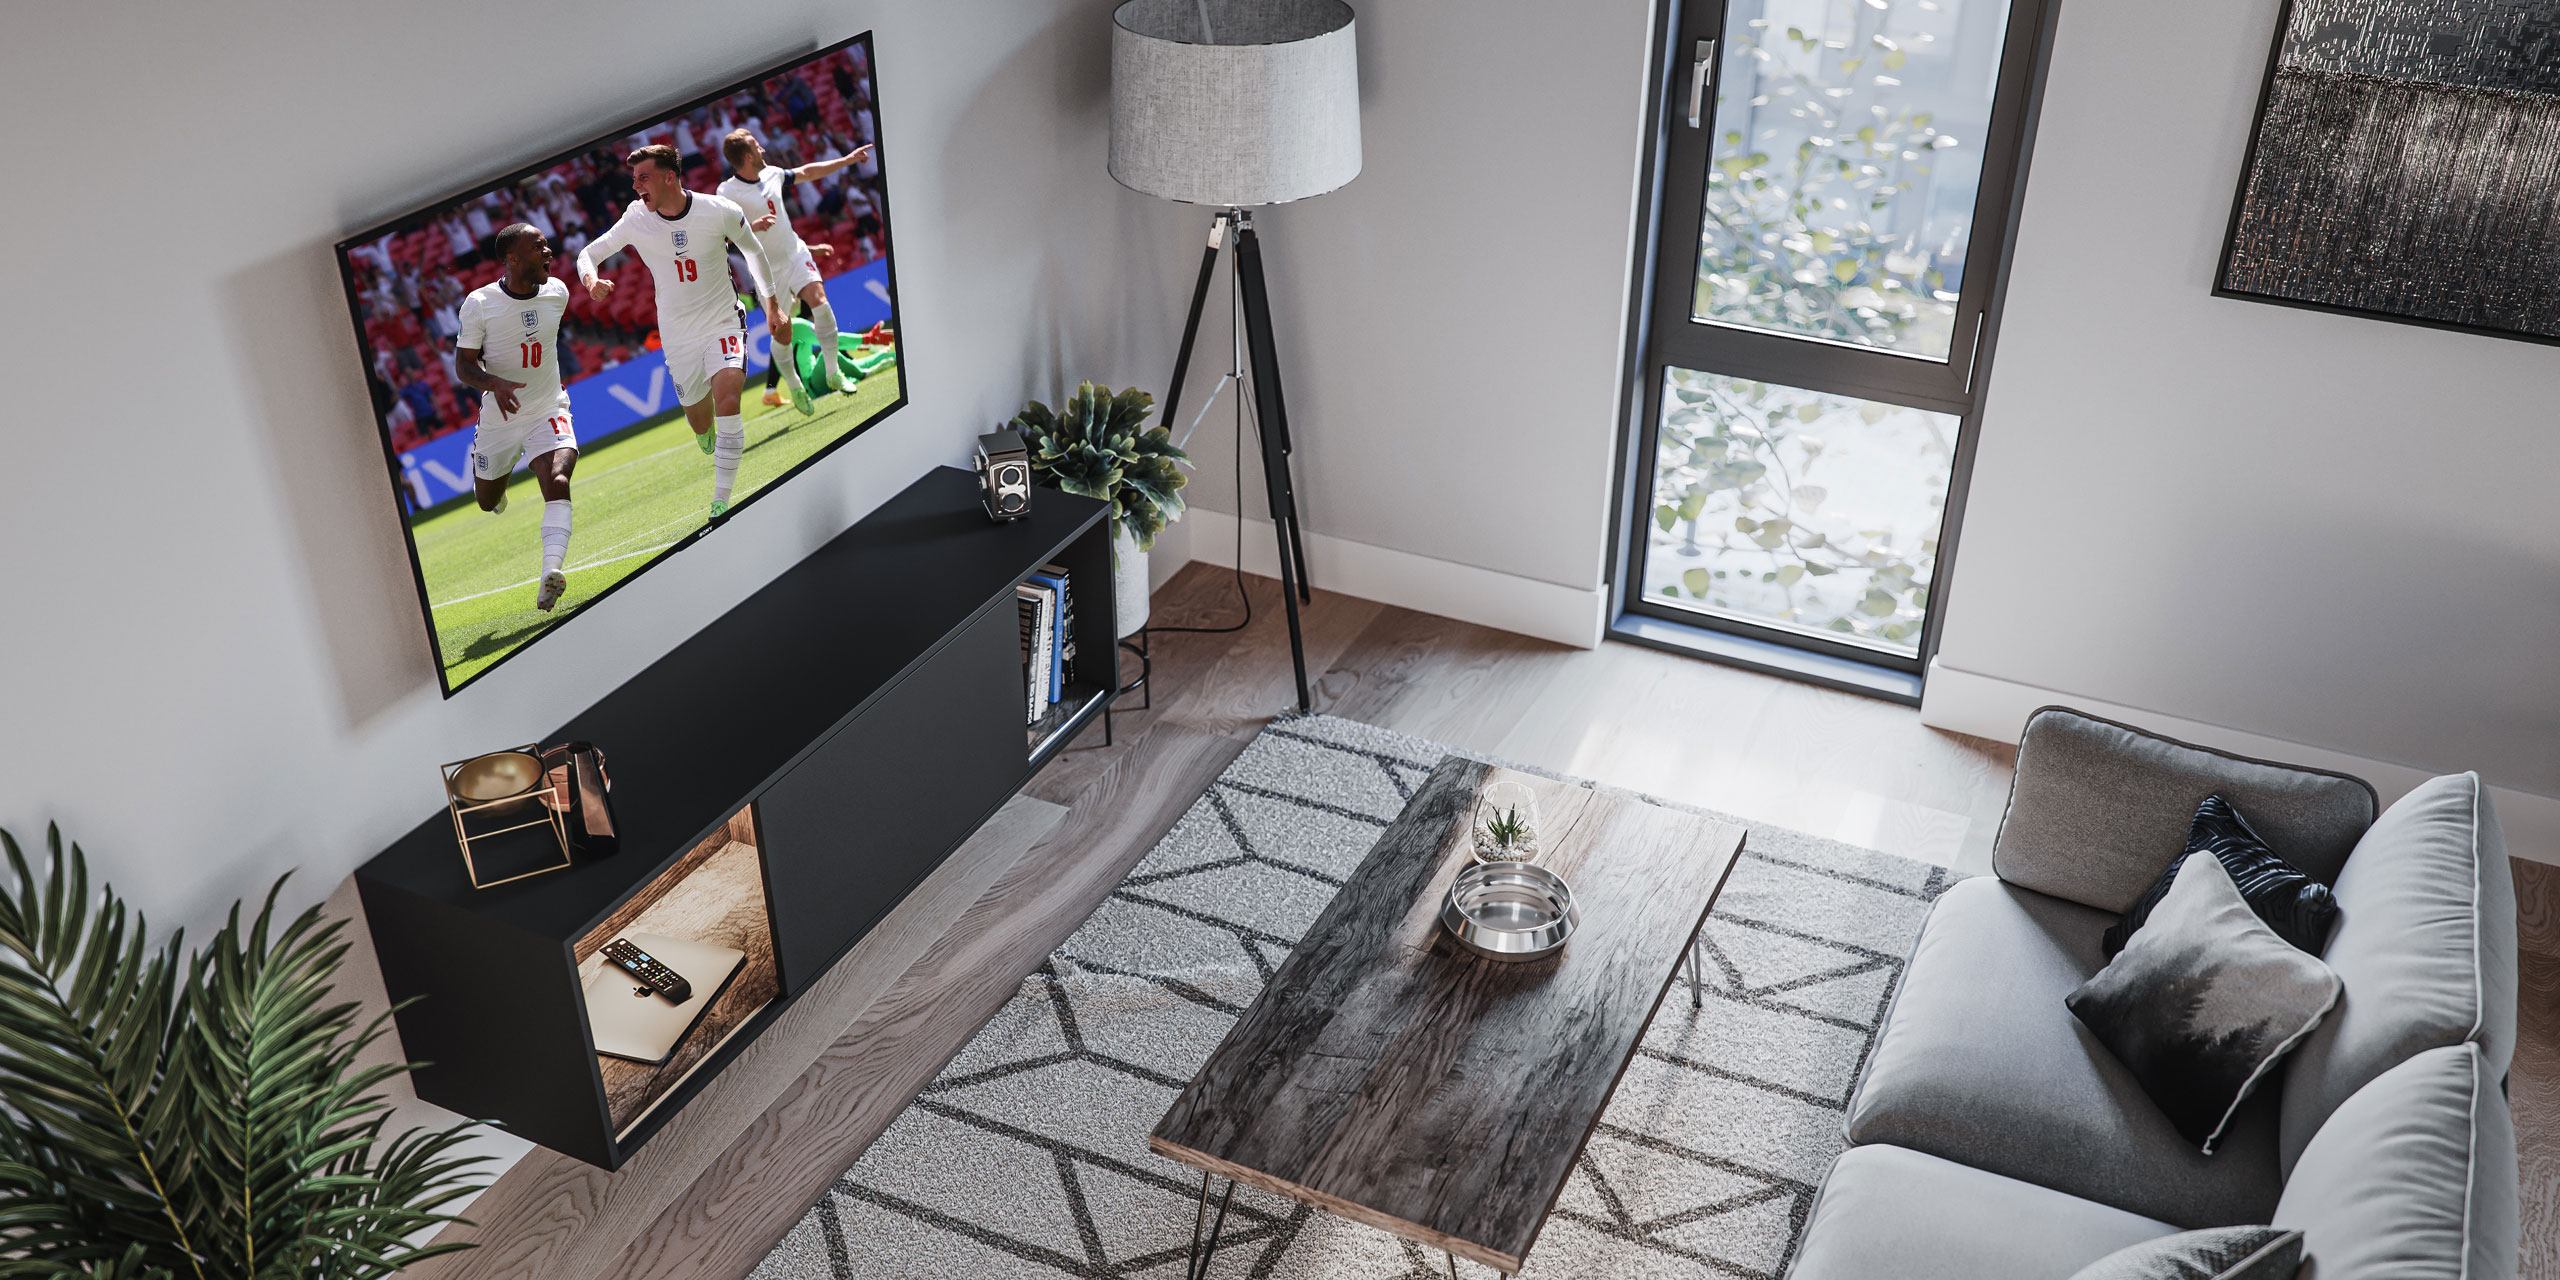 Media Station and living room with football on the TV - hosting